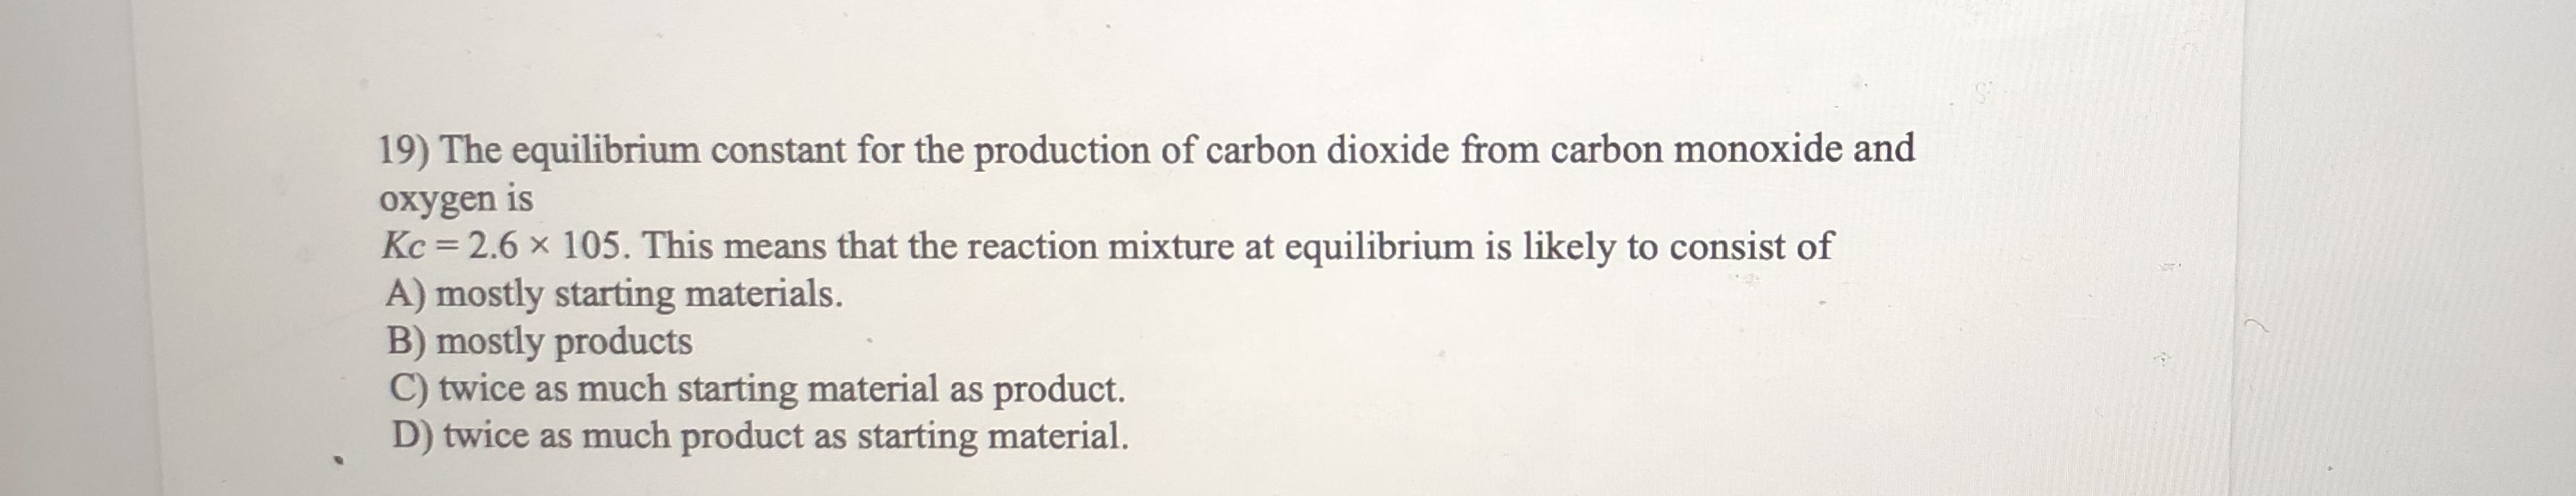 19) The equilibrium constant for the production of carbon dioxide from carbon monoxide and oxygen is Kc = 2.6 x 105. This means that the reaction mixture at equilibrium is likely to consist of s means A) mostly starting materials. mostly products C) twice as much starting material as product. D) twice as much product as starting material.